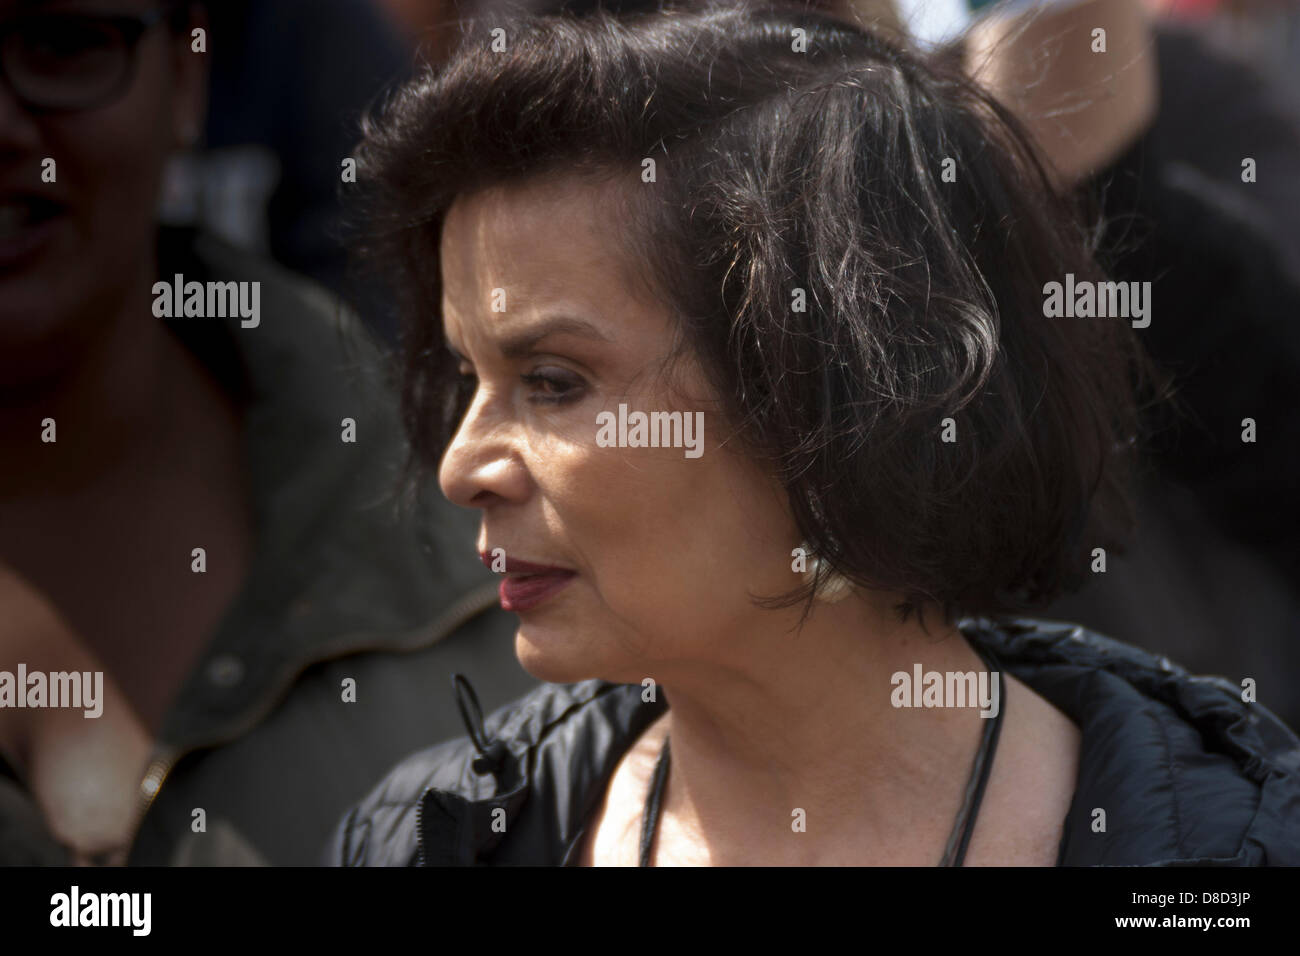 2013-05-25 Westminster, London. Bianca Jagger, a well known and respected environmentalist and campaigner joined - Stock Image